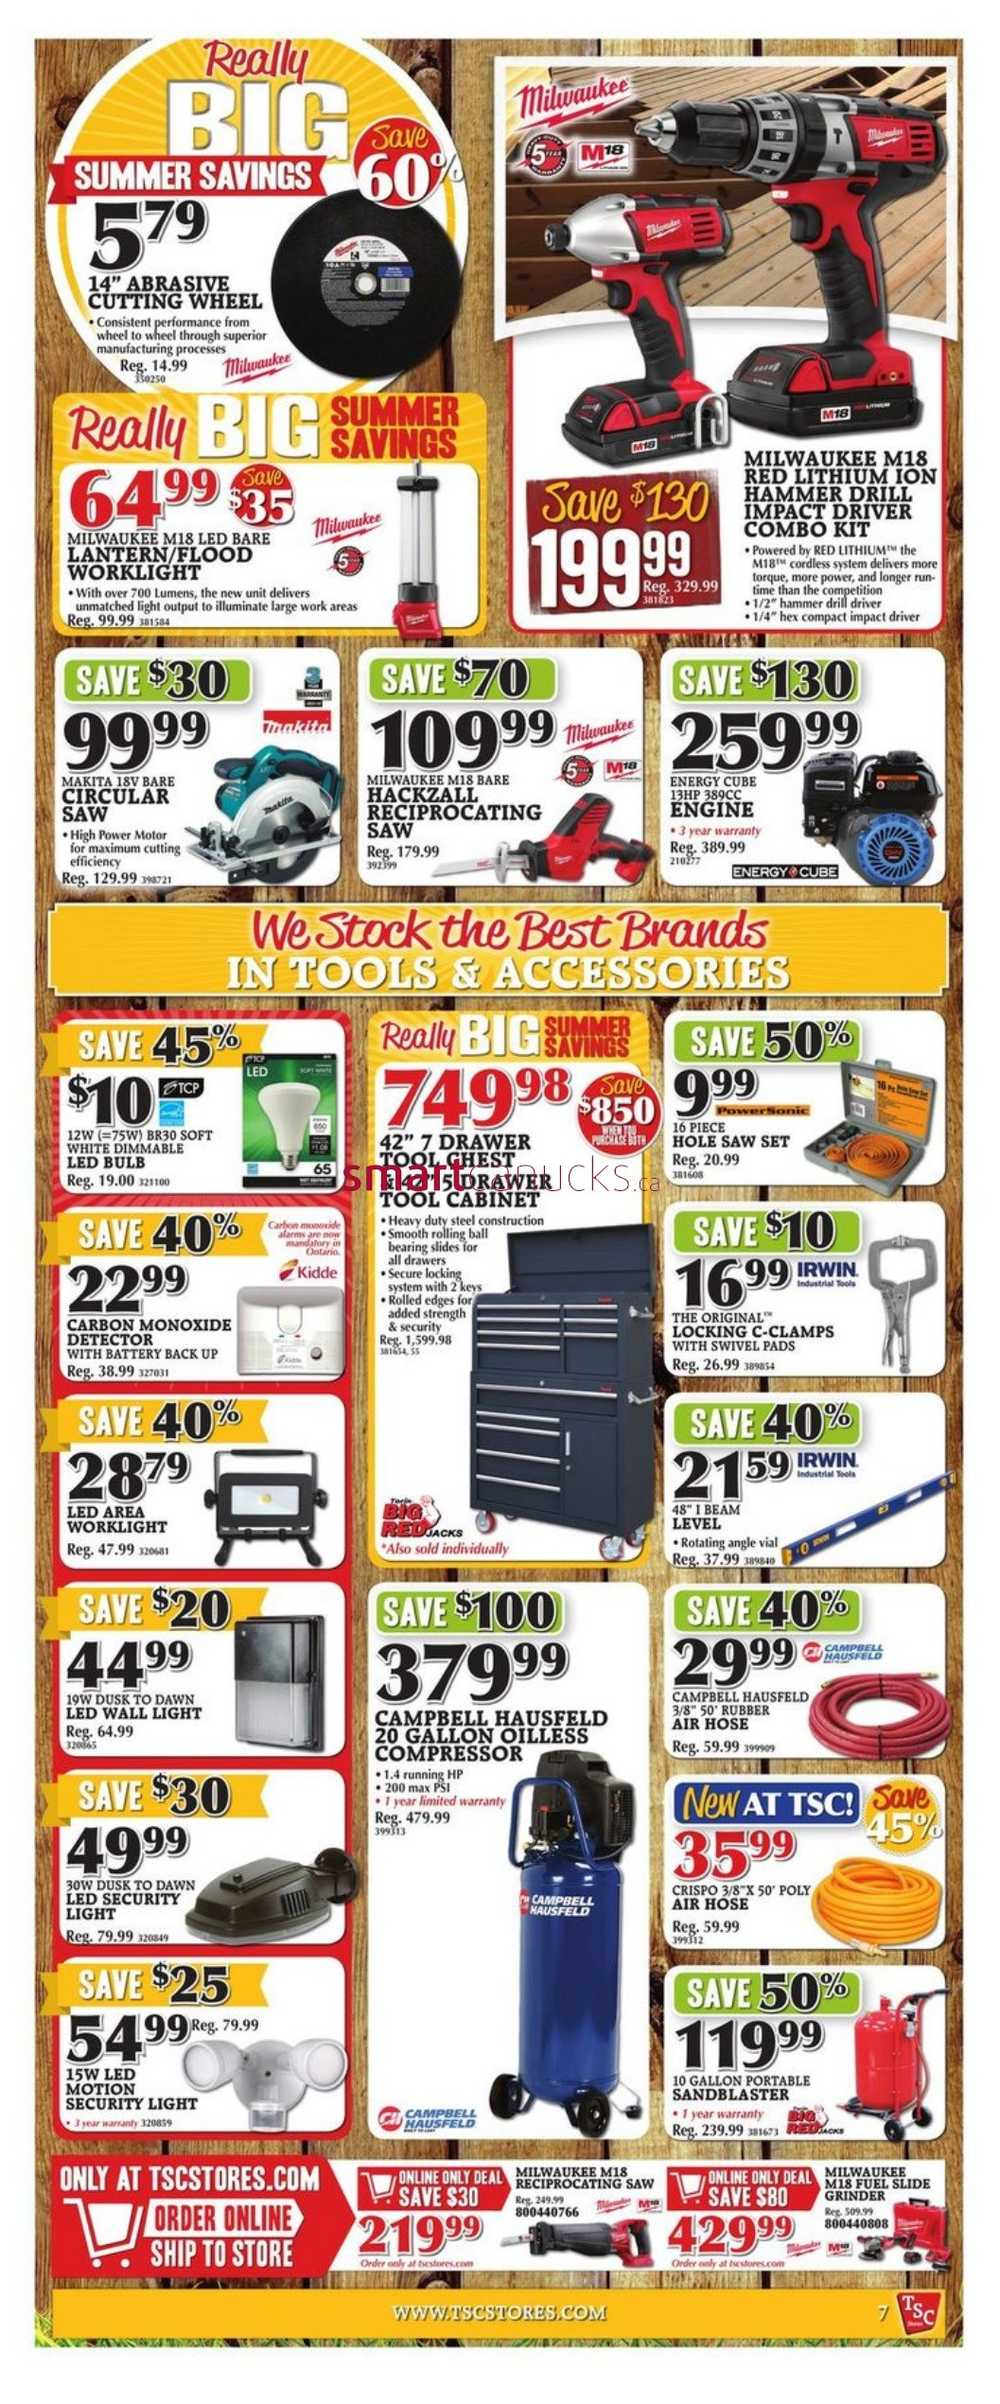 Peebles coupons march 2018